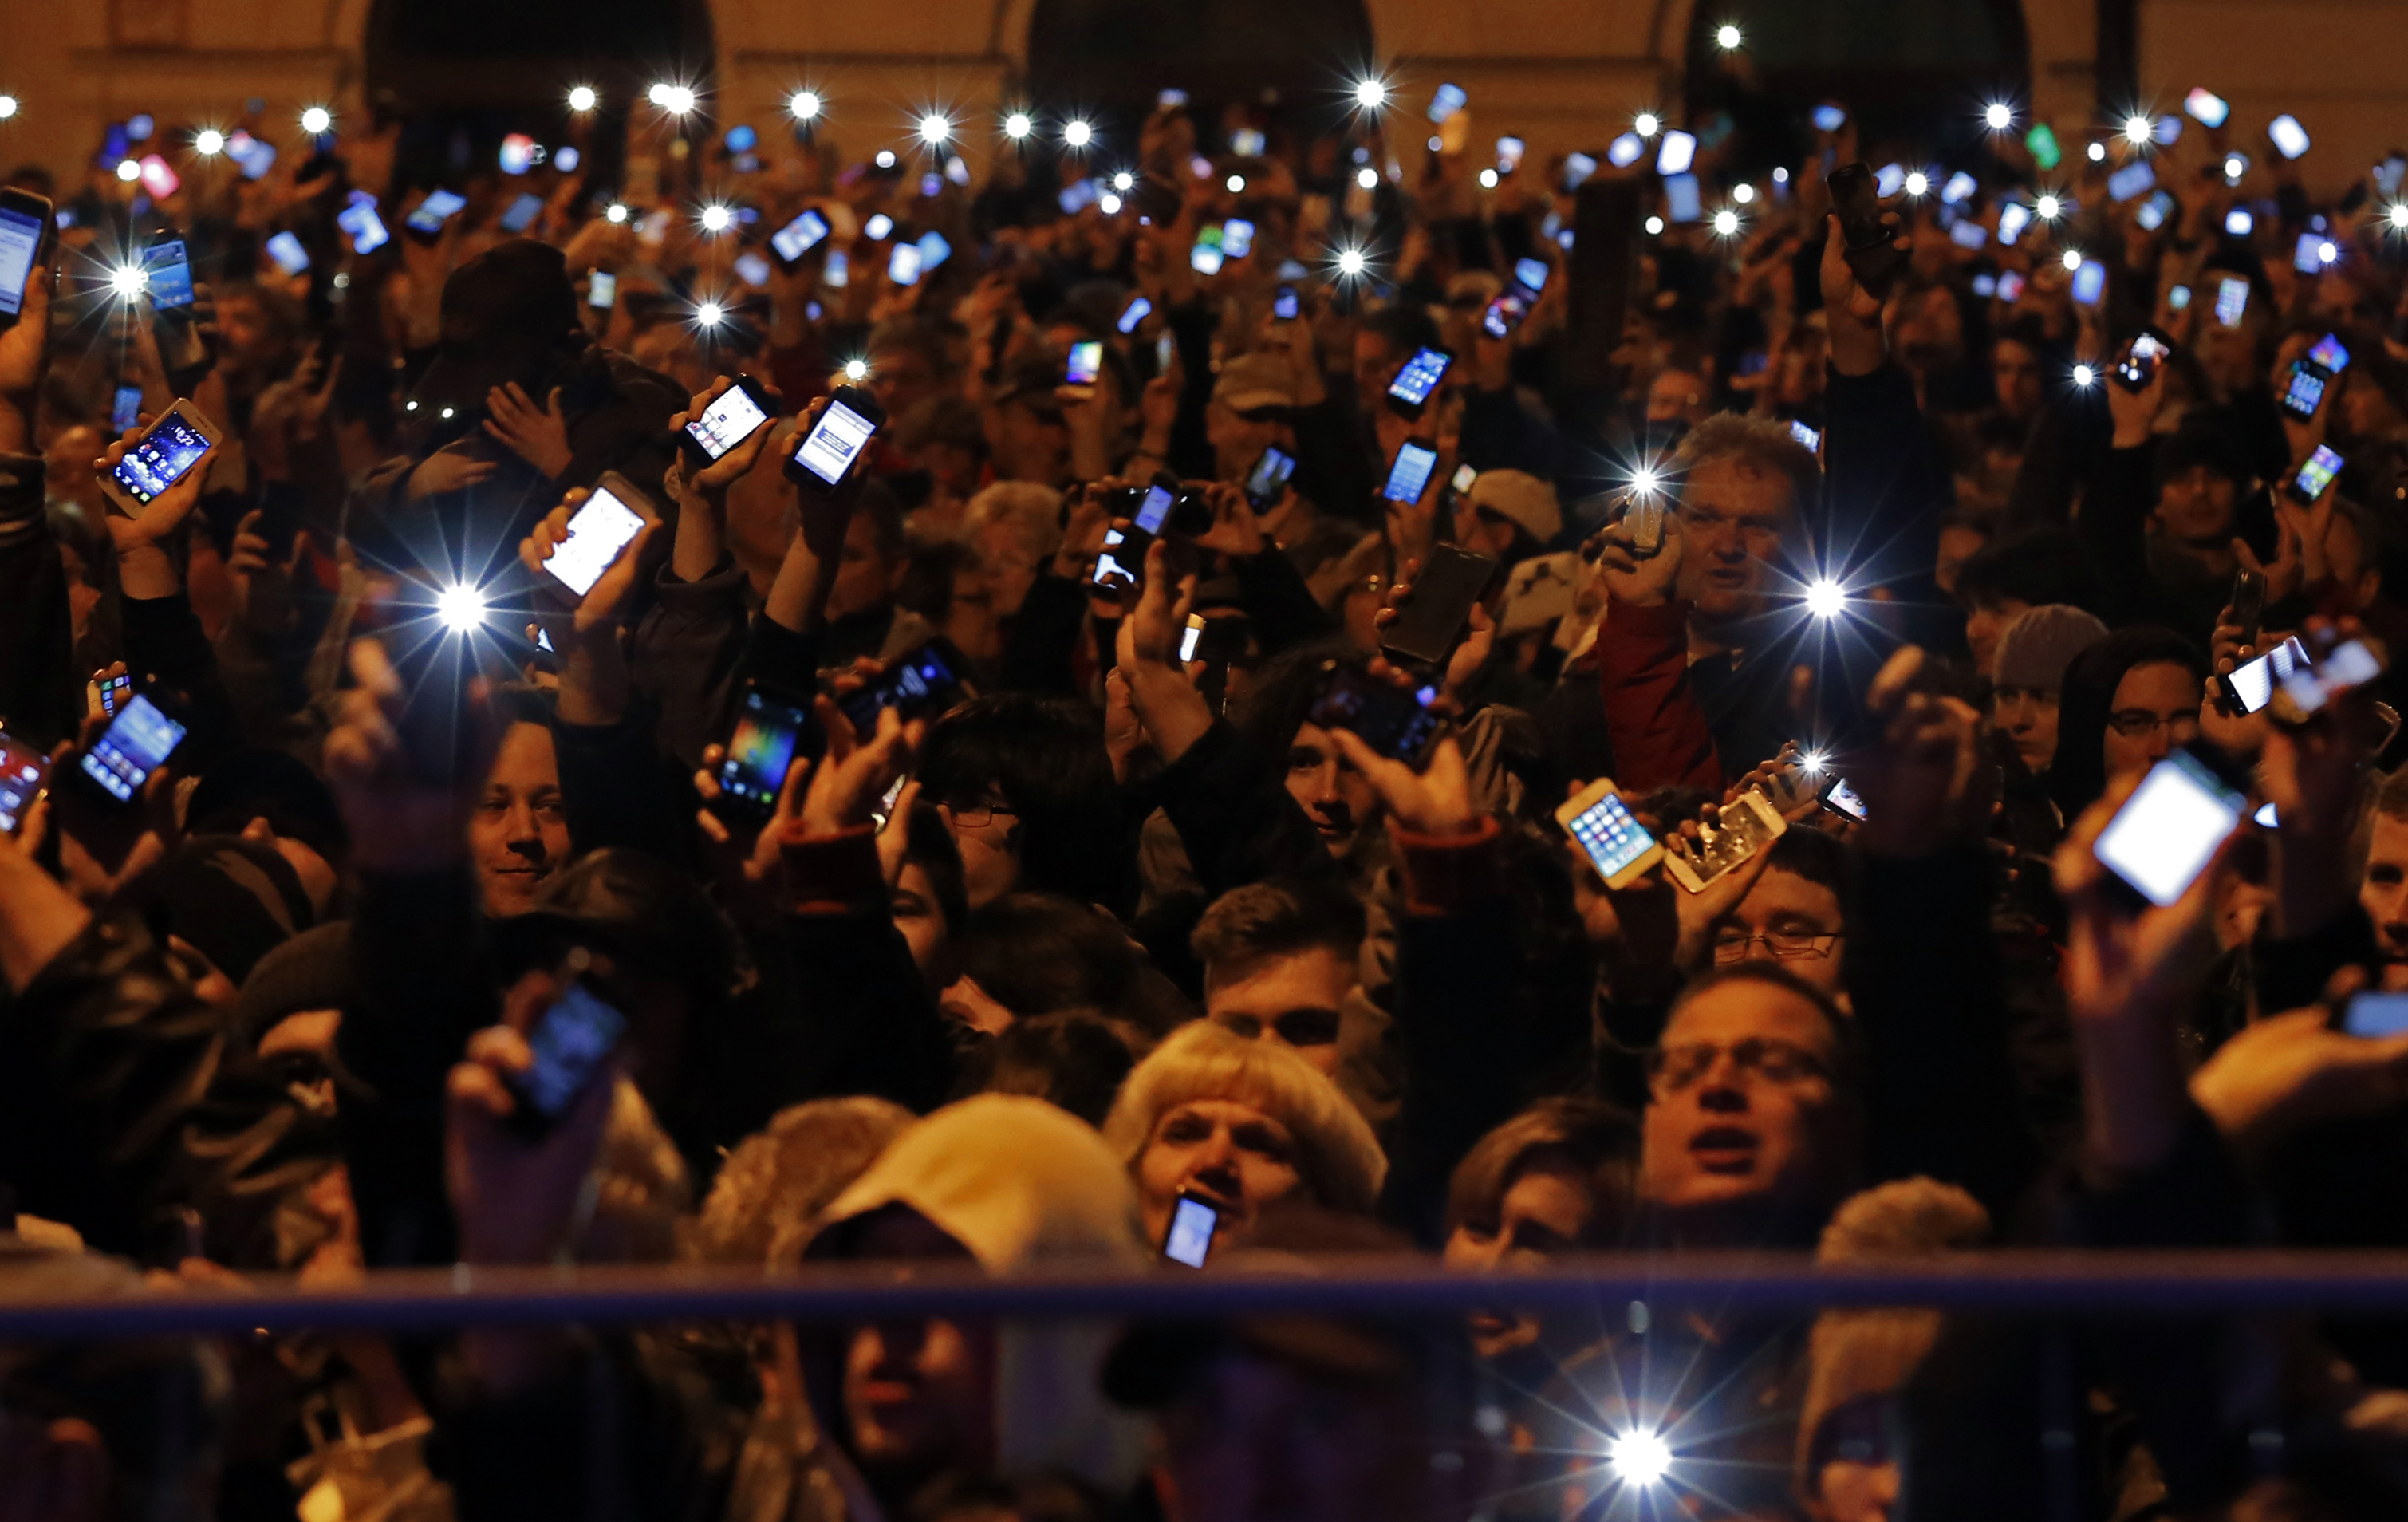 People hold up their mobile phones as they protest against a new tax on Internet data transfers in the centre of Budapest October 26, 2014 [Reuters]